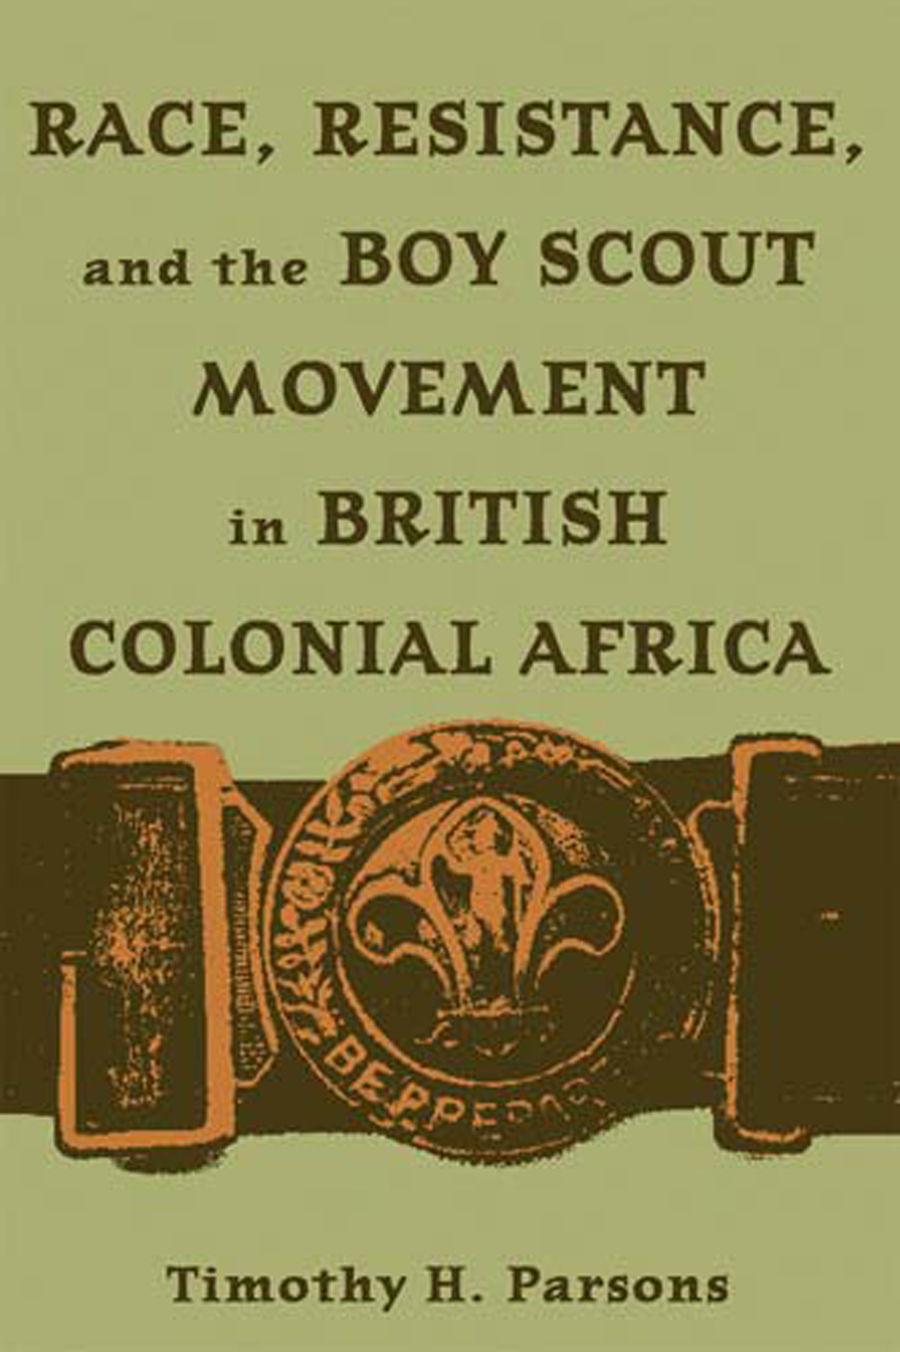 british colonialism in africa essay Related documents: colonialism and africa essay essay prior to british colonialism, india's languages were very fragmented and had about 15 major languages.